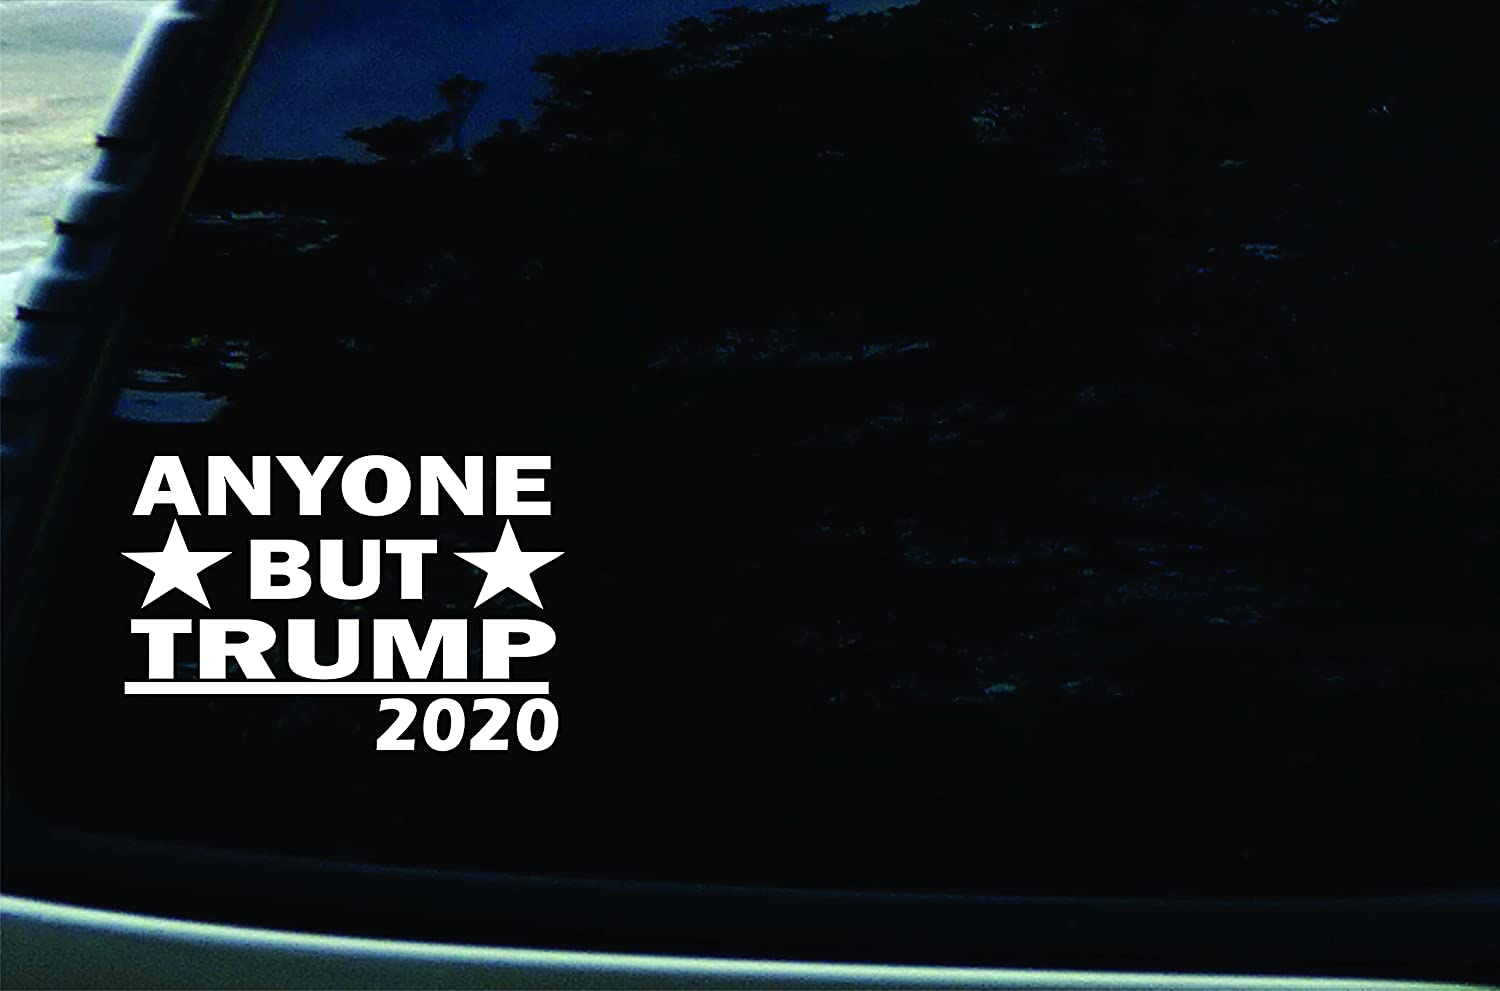 Fall 2020 Decals.Southern Fried Decals 6 X 4 Anyone But Trump 2020 Vinyl Die Cut Decal For Your Car Truck Laptop Window